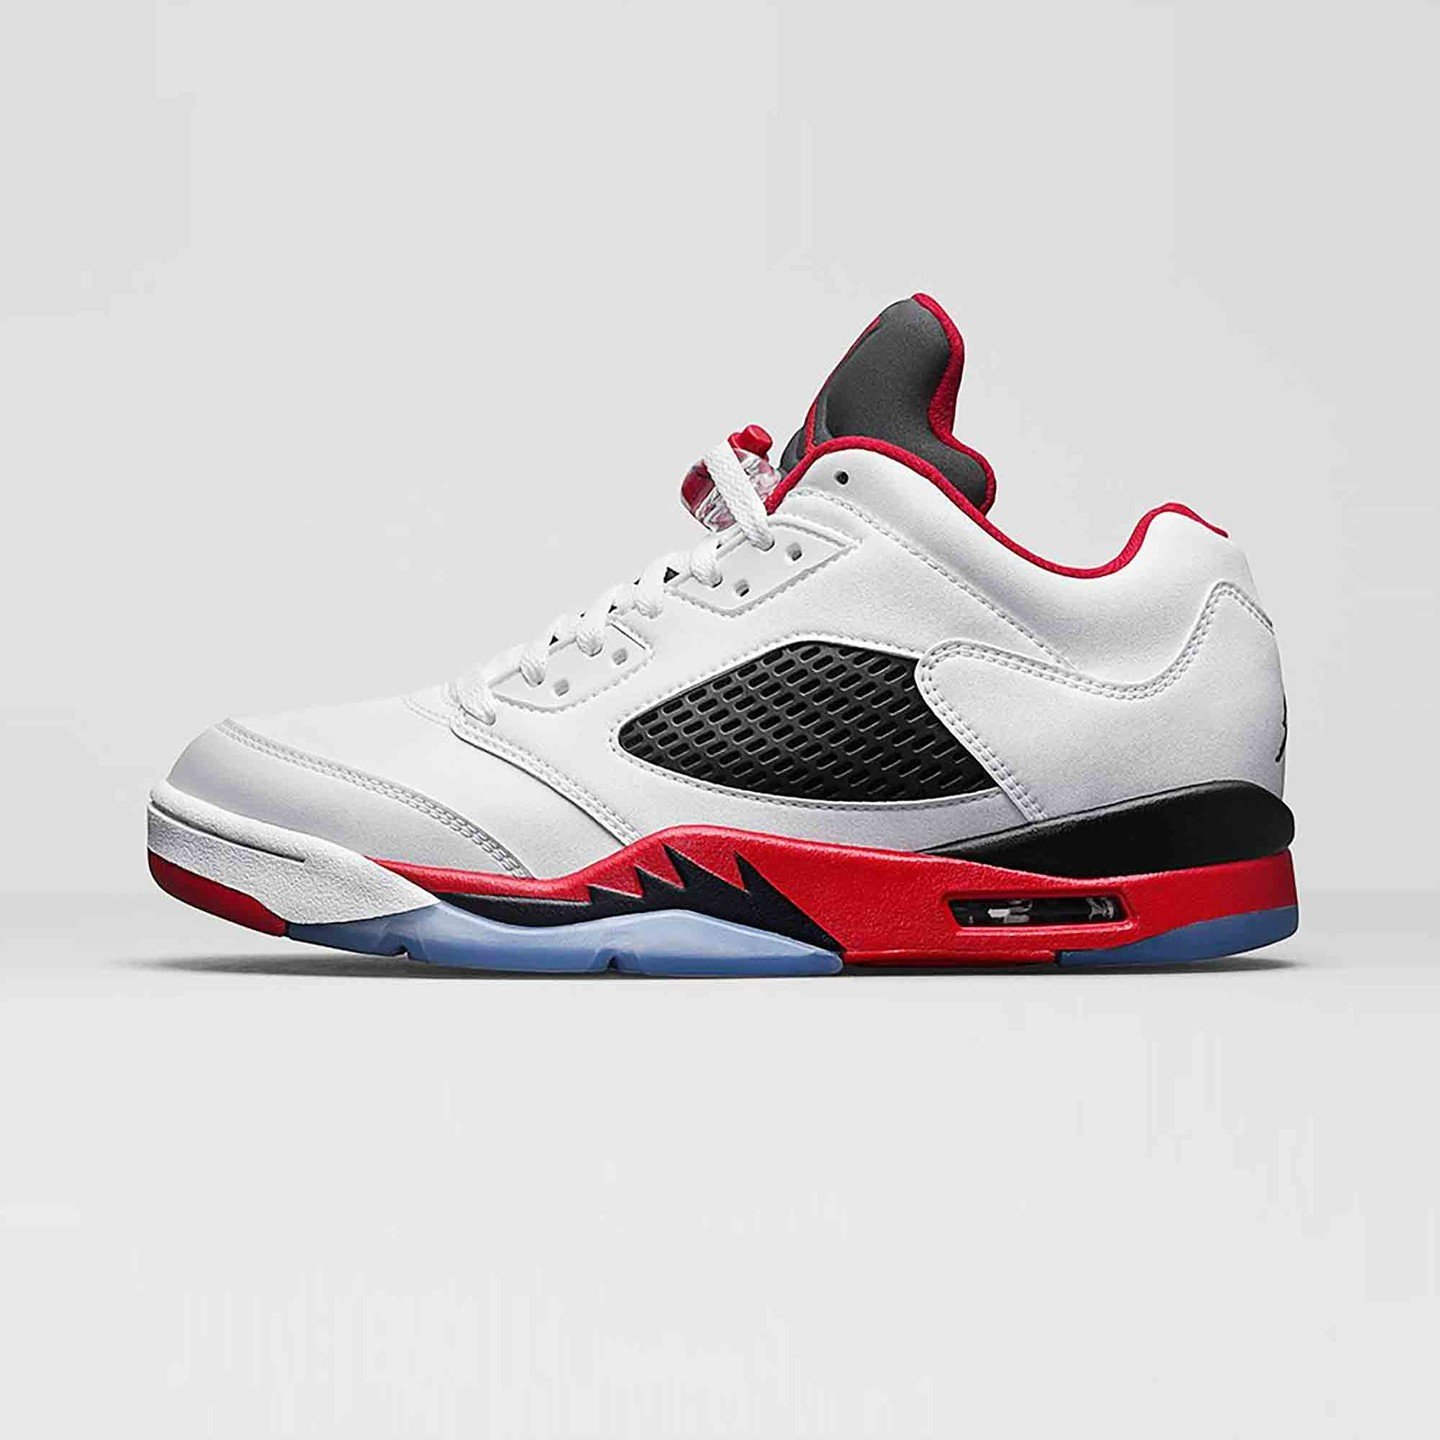 Jordan Air Jordan 5 Low Retro 'Fire Red' White / Fire Red / Black 819171-101-44